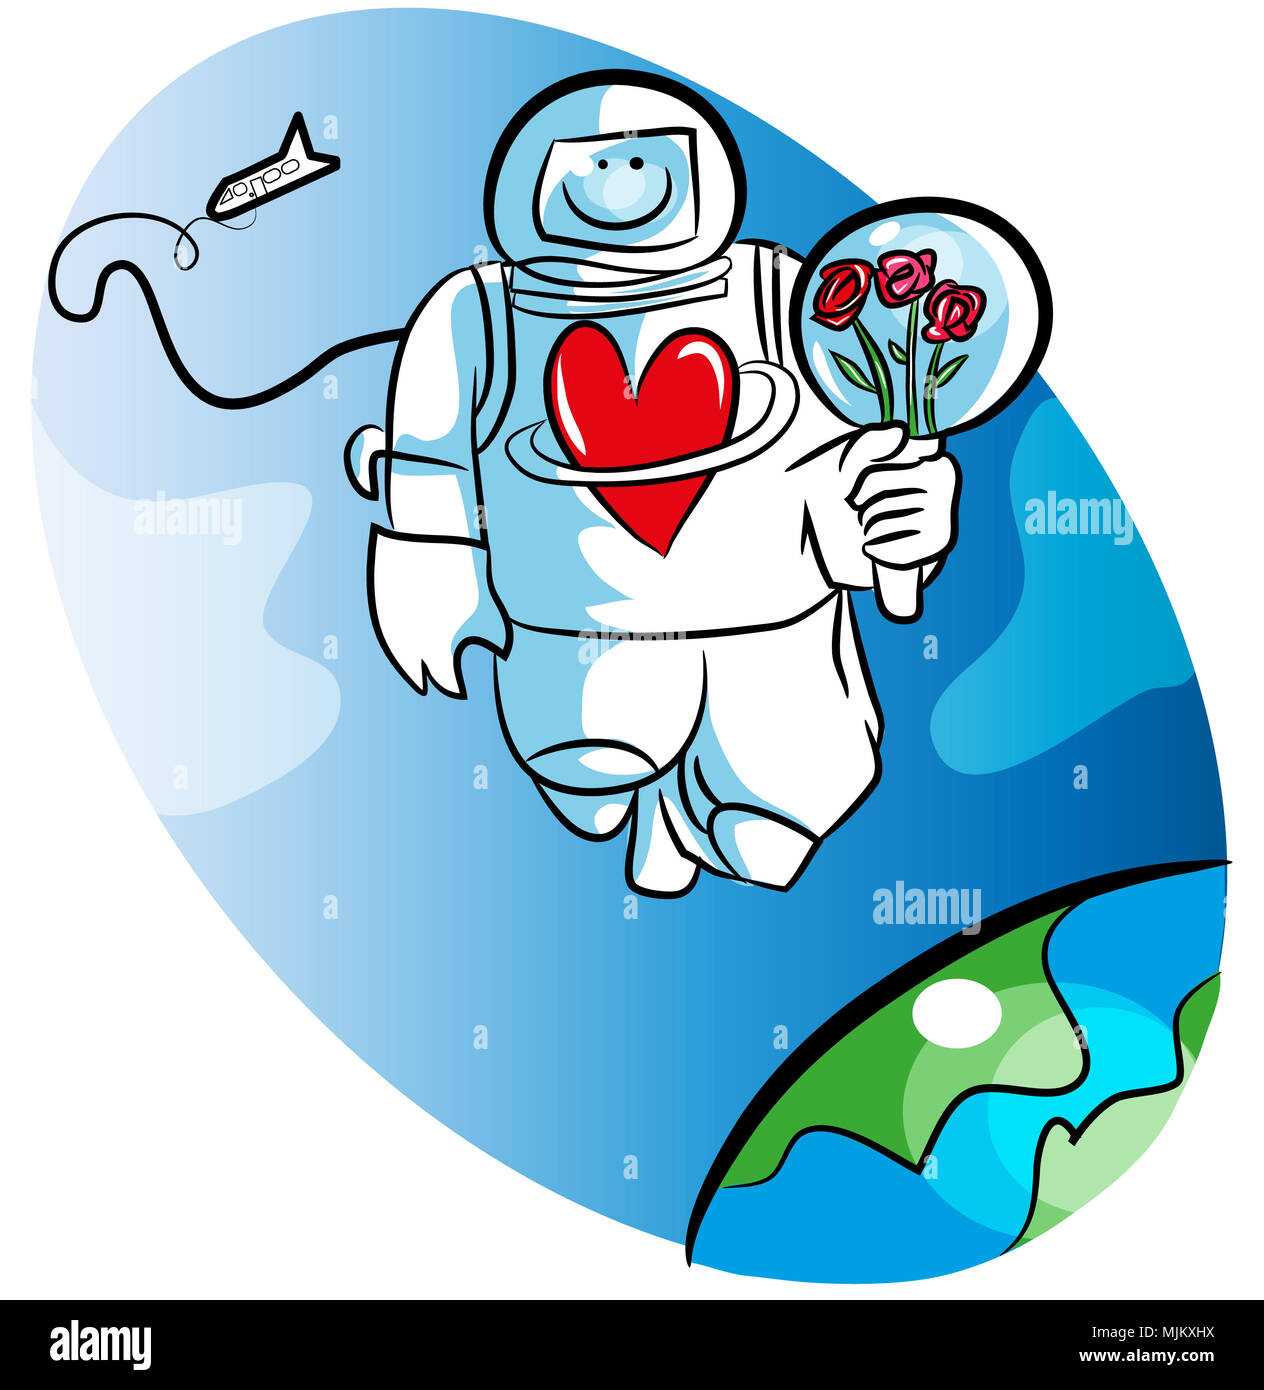 Cartoon space man and love. illustration of astronaut waiting for his darling. Space man or astronaut holding roses in the space. - Stock Image